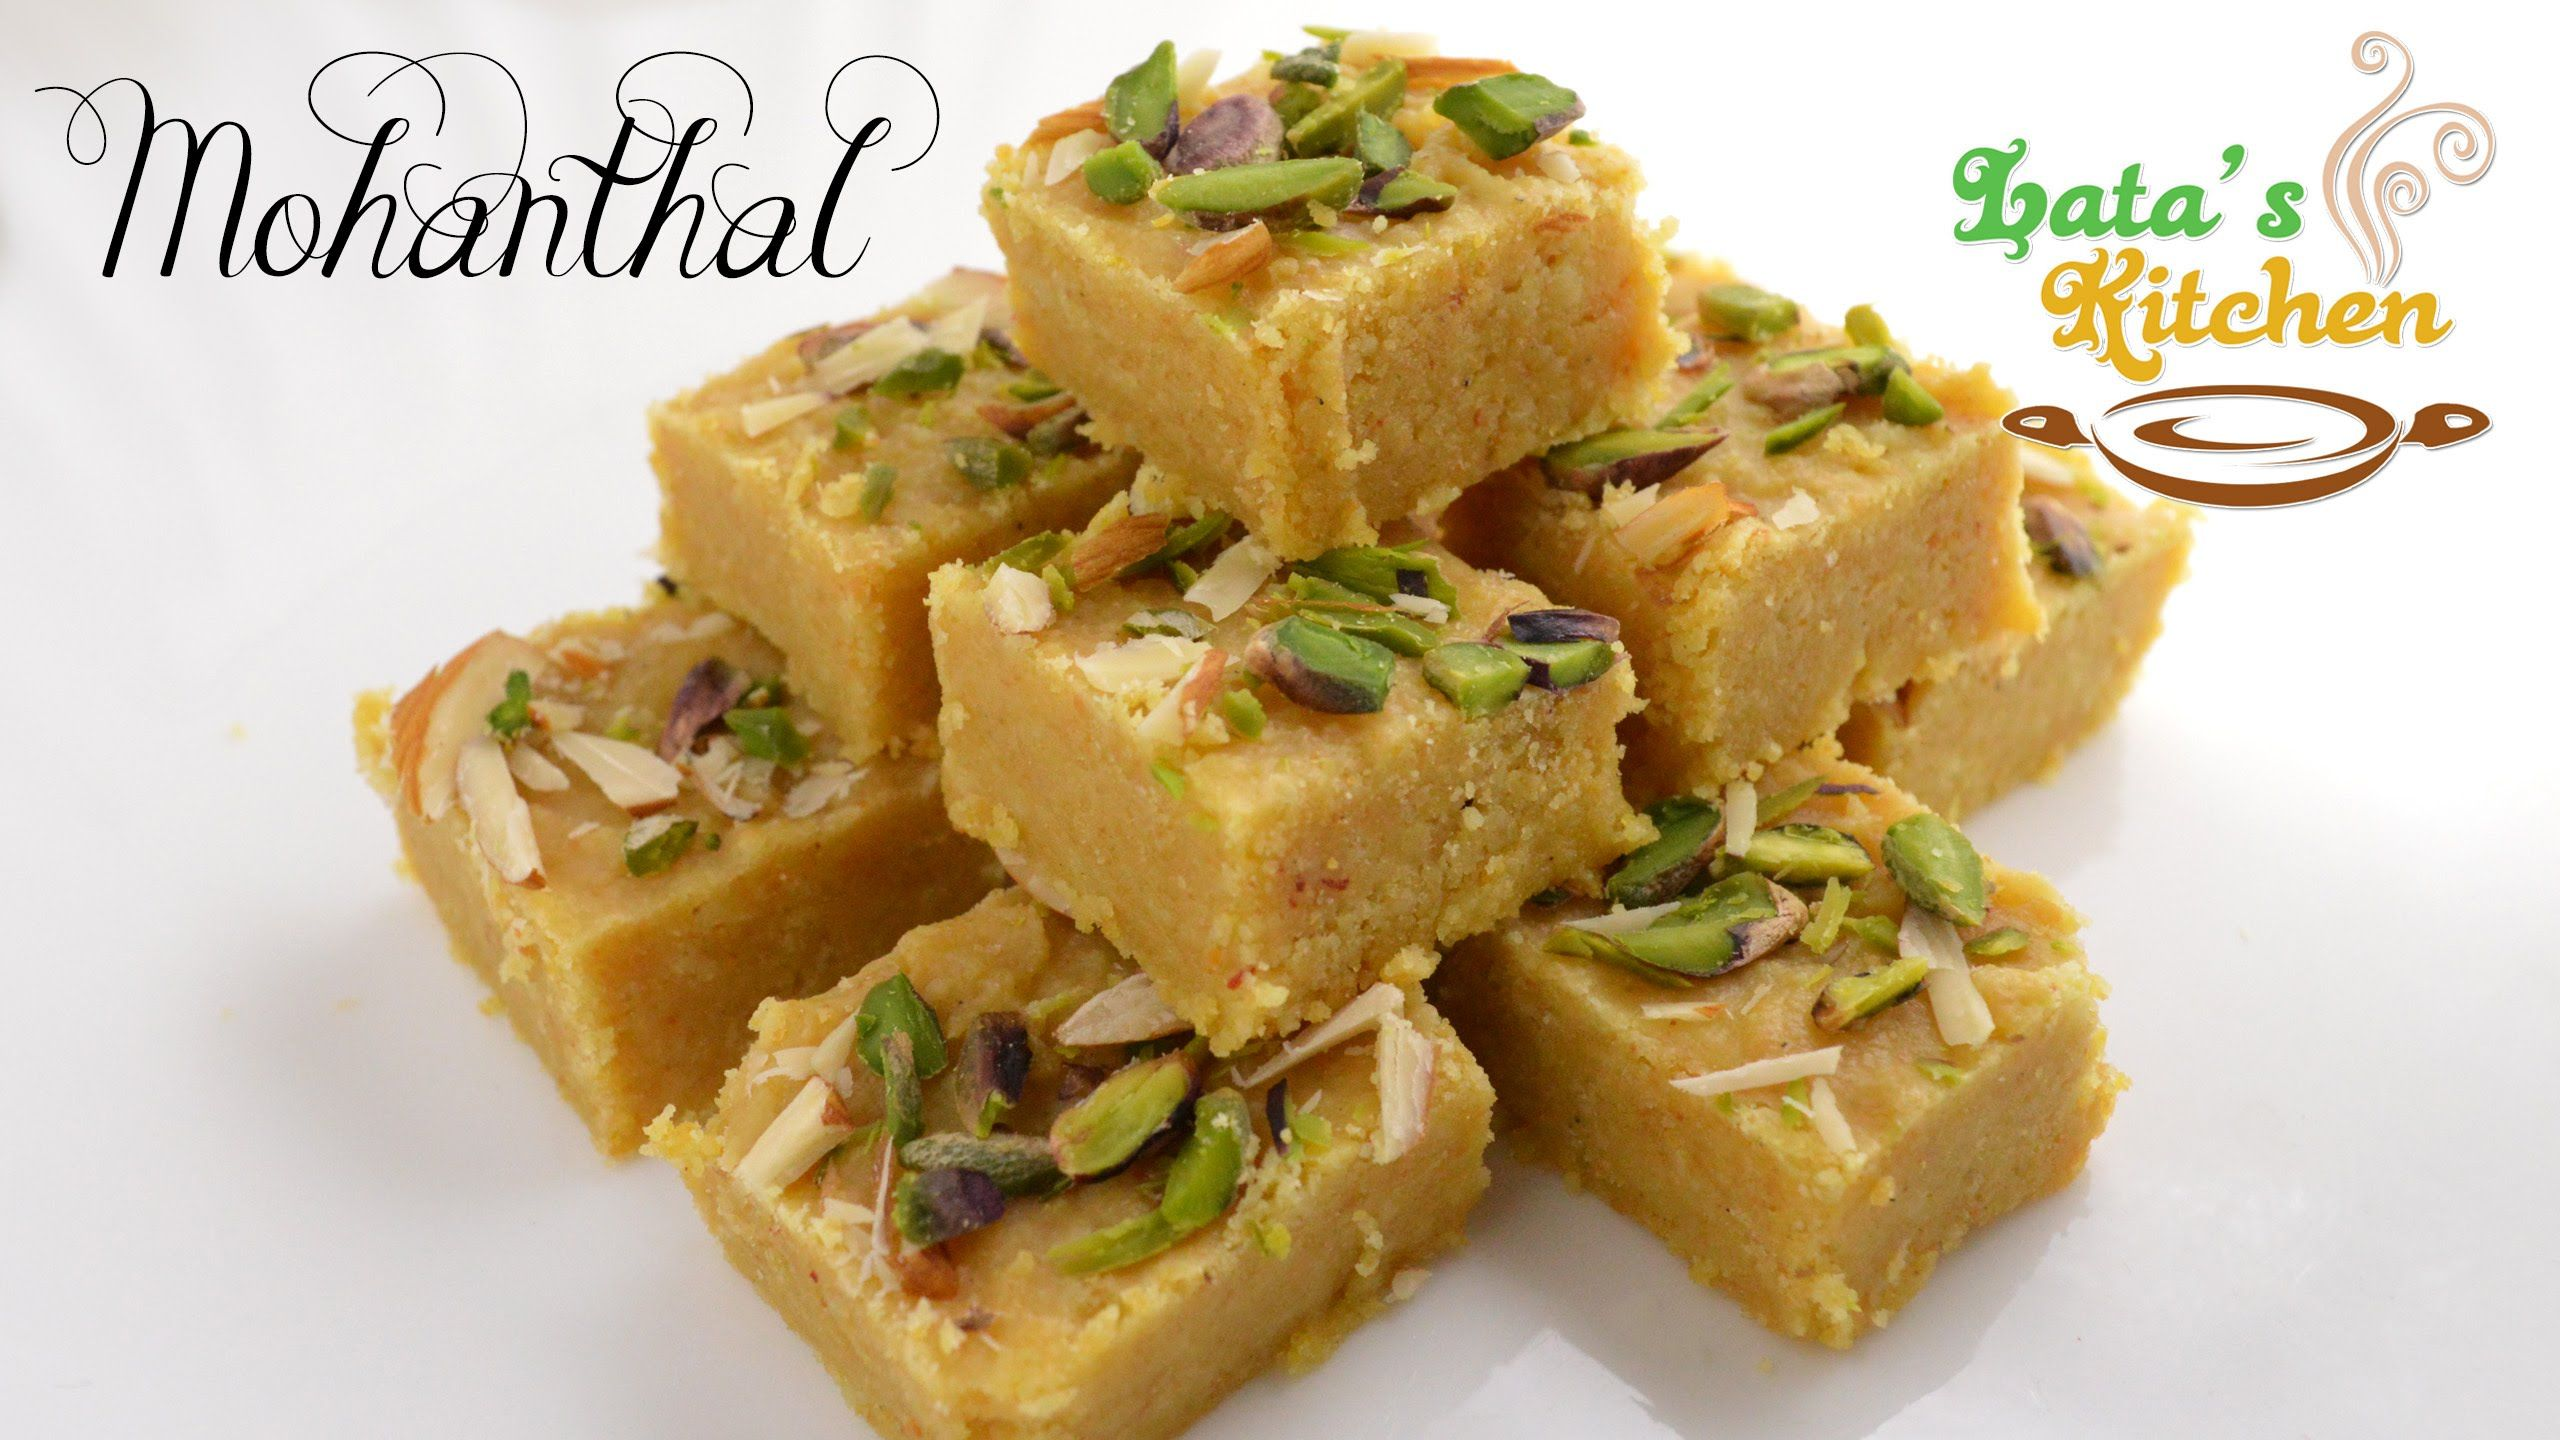 Mohanthal recipe video gujarati indian vegetarian fudge recipe in mohanthal recipe video gujarati indian vegetarian fudge recipe in hindi with english subtitles forumfinder Image collections